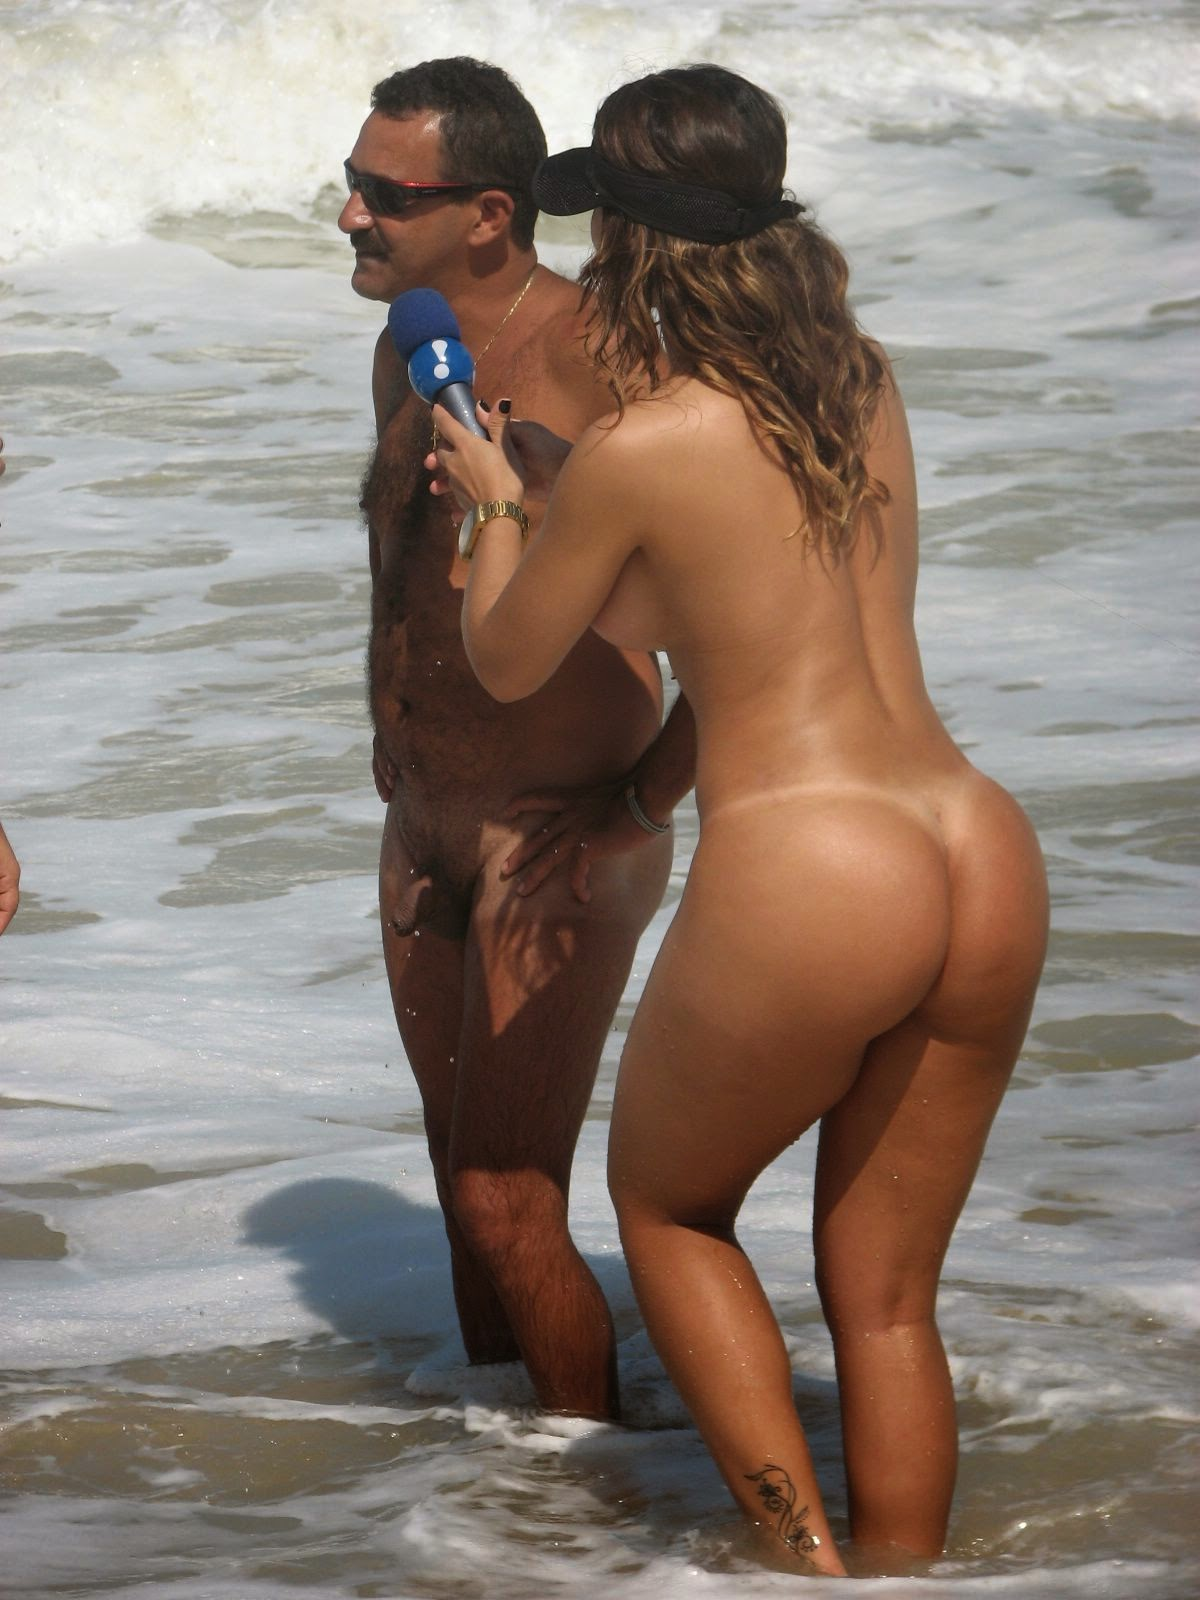 Seems brilliant nude brazilian on beach join